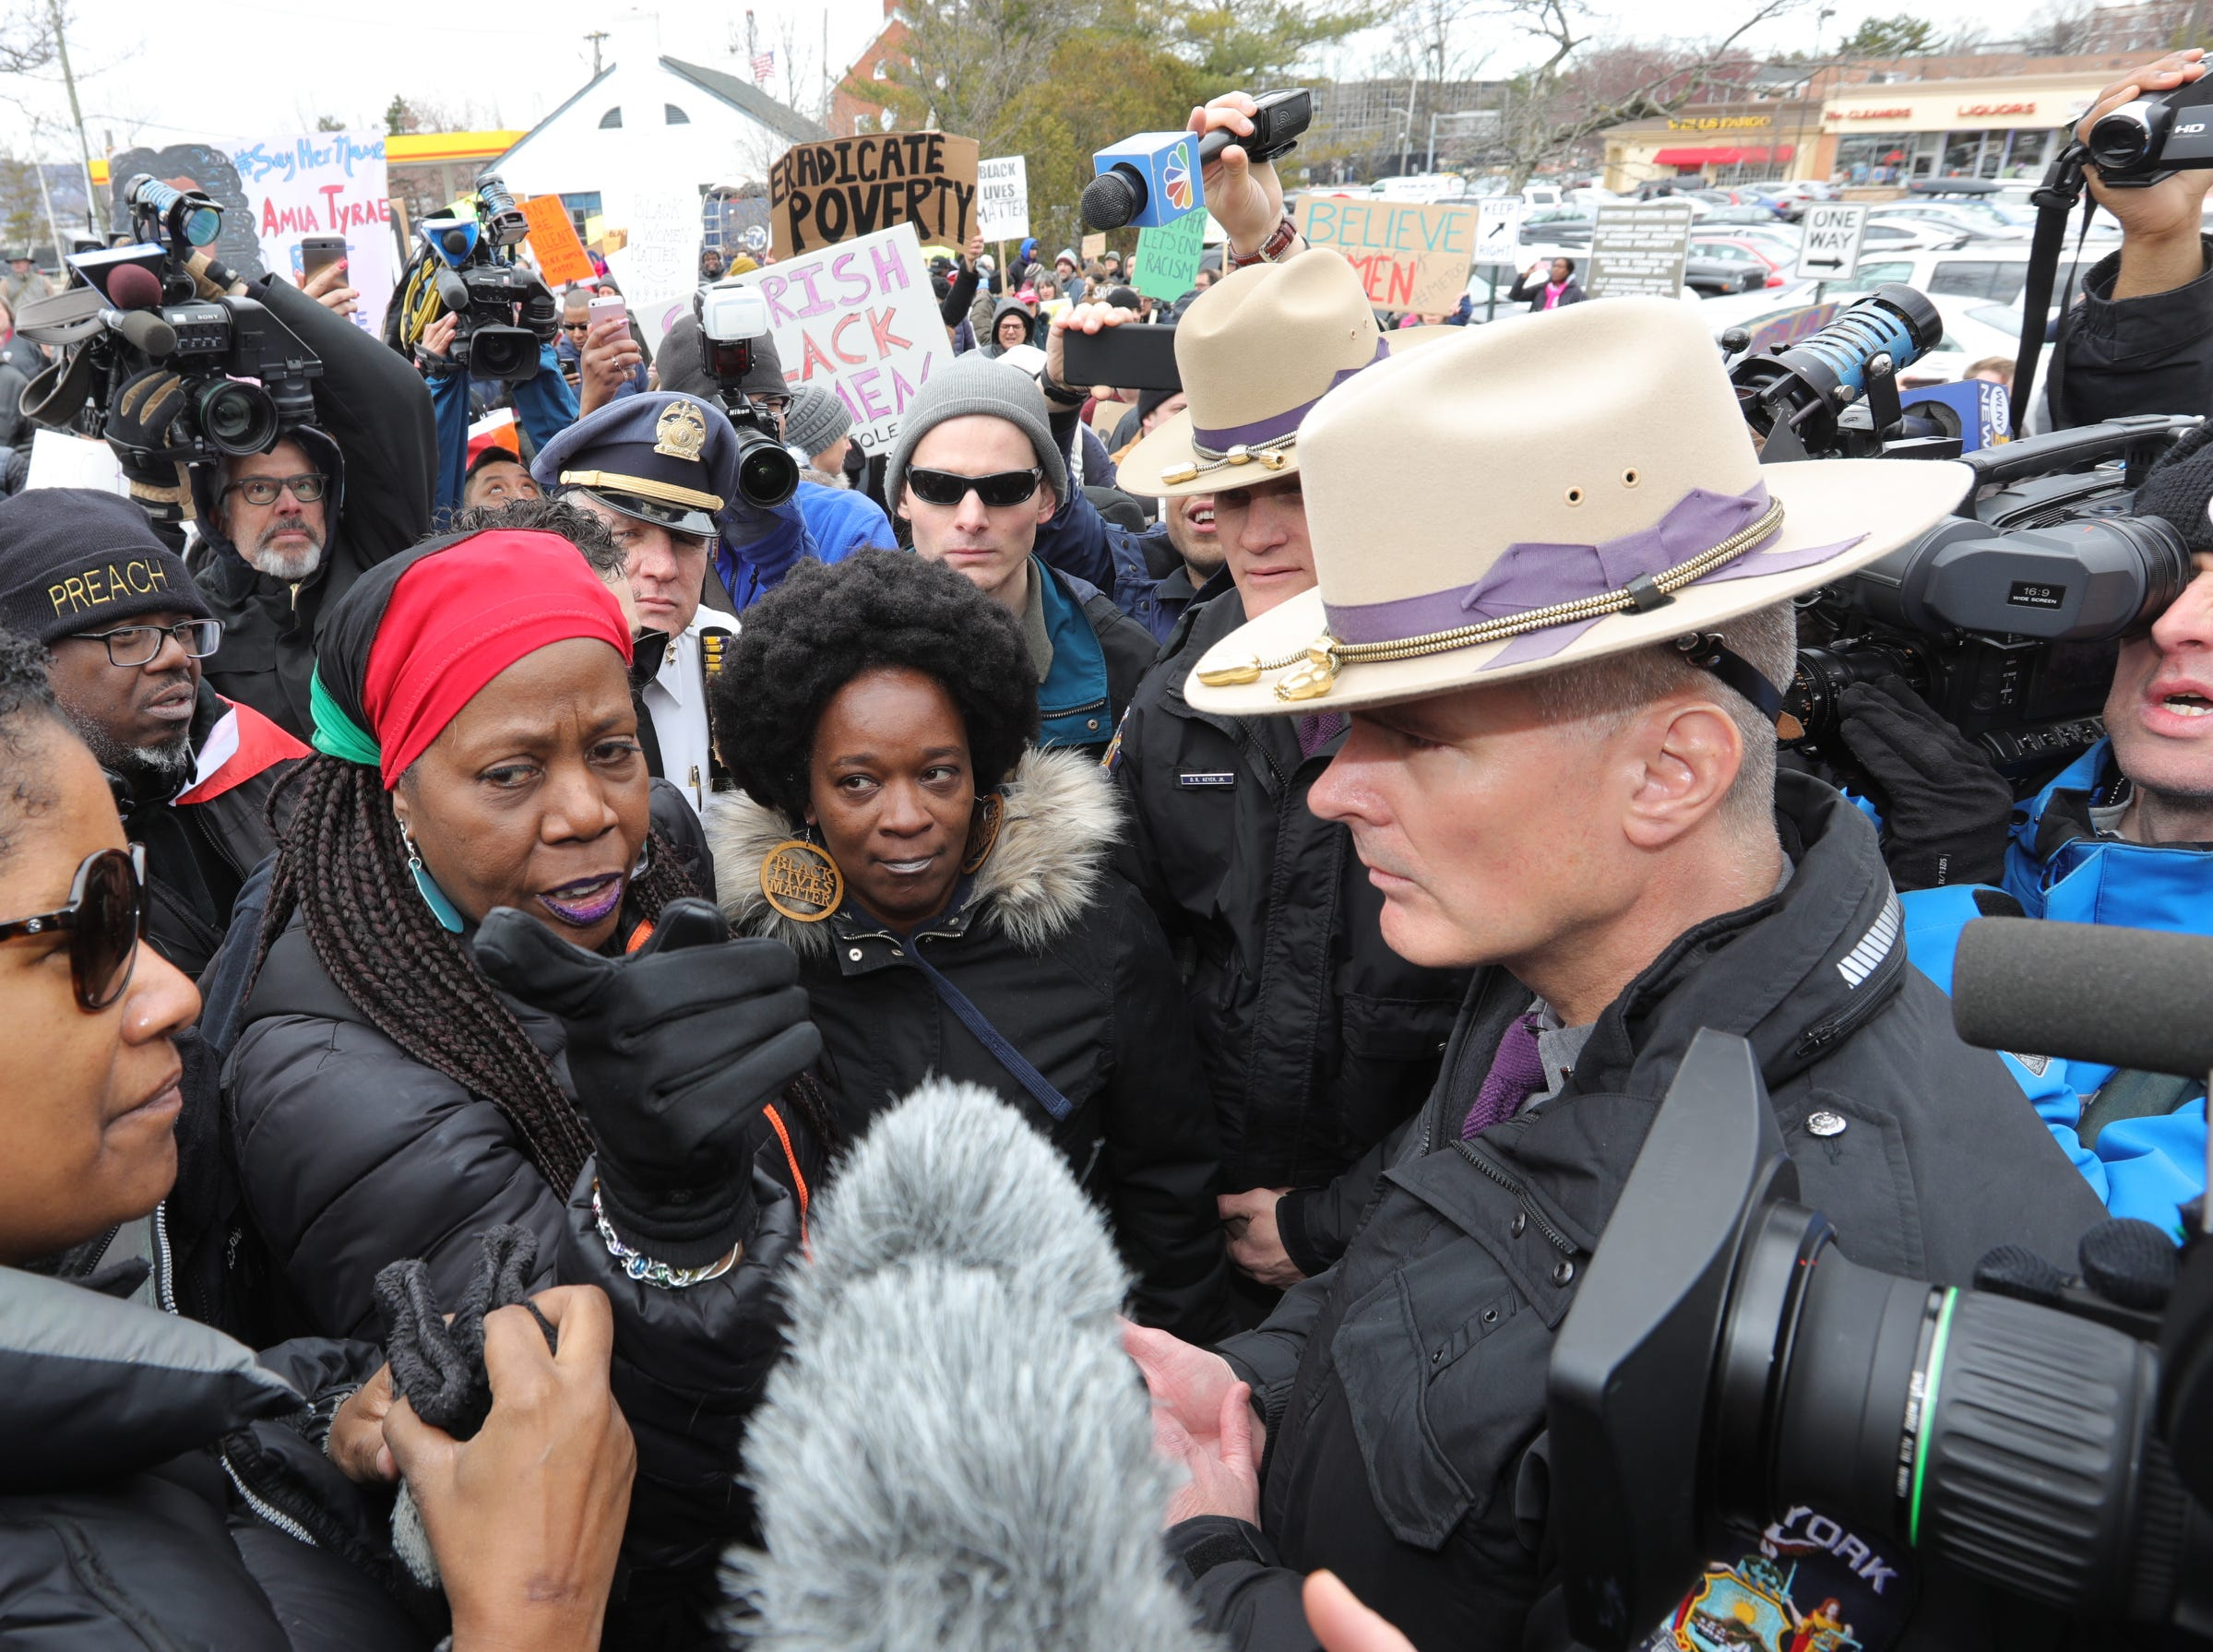 Black Women's March organizer Vanessa Green, left, explains to Capt. George Mohl of the New York State Police, the protesters plan on marching across the Gov. Mario M. Cuomo Bridge from Tarrytown to Nyack on Saturday, April 7, 2018.  The protesters were stopped by police. Attempts to cross the police line by protesters causing pushing and shoving between police and protesters. No arrests were made.